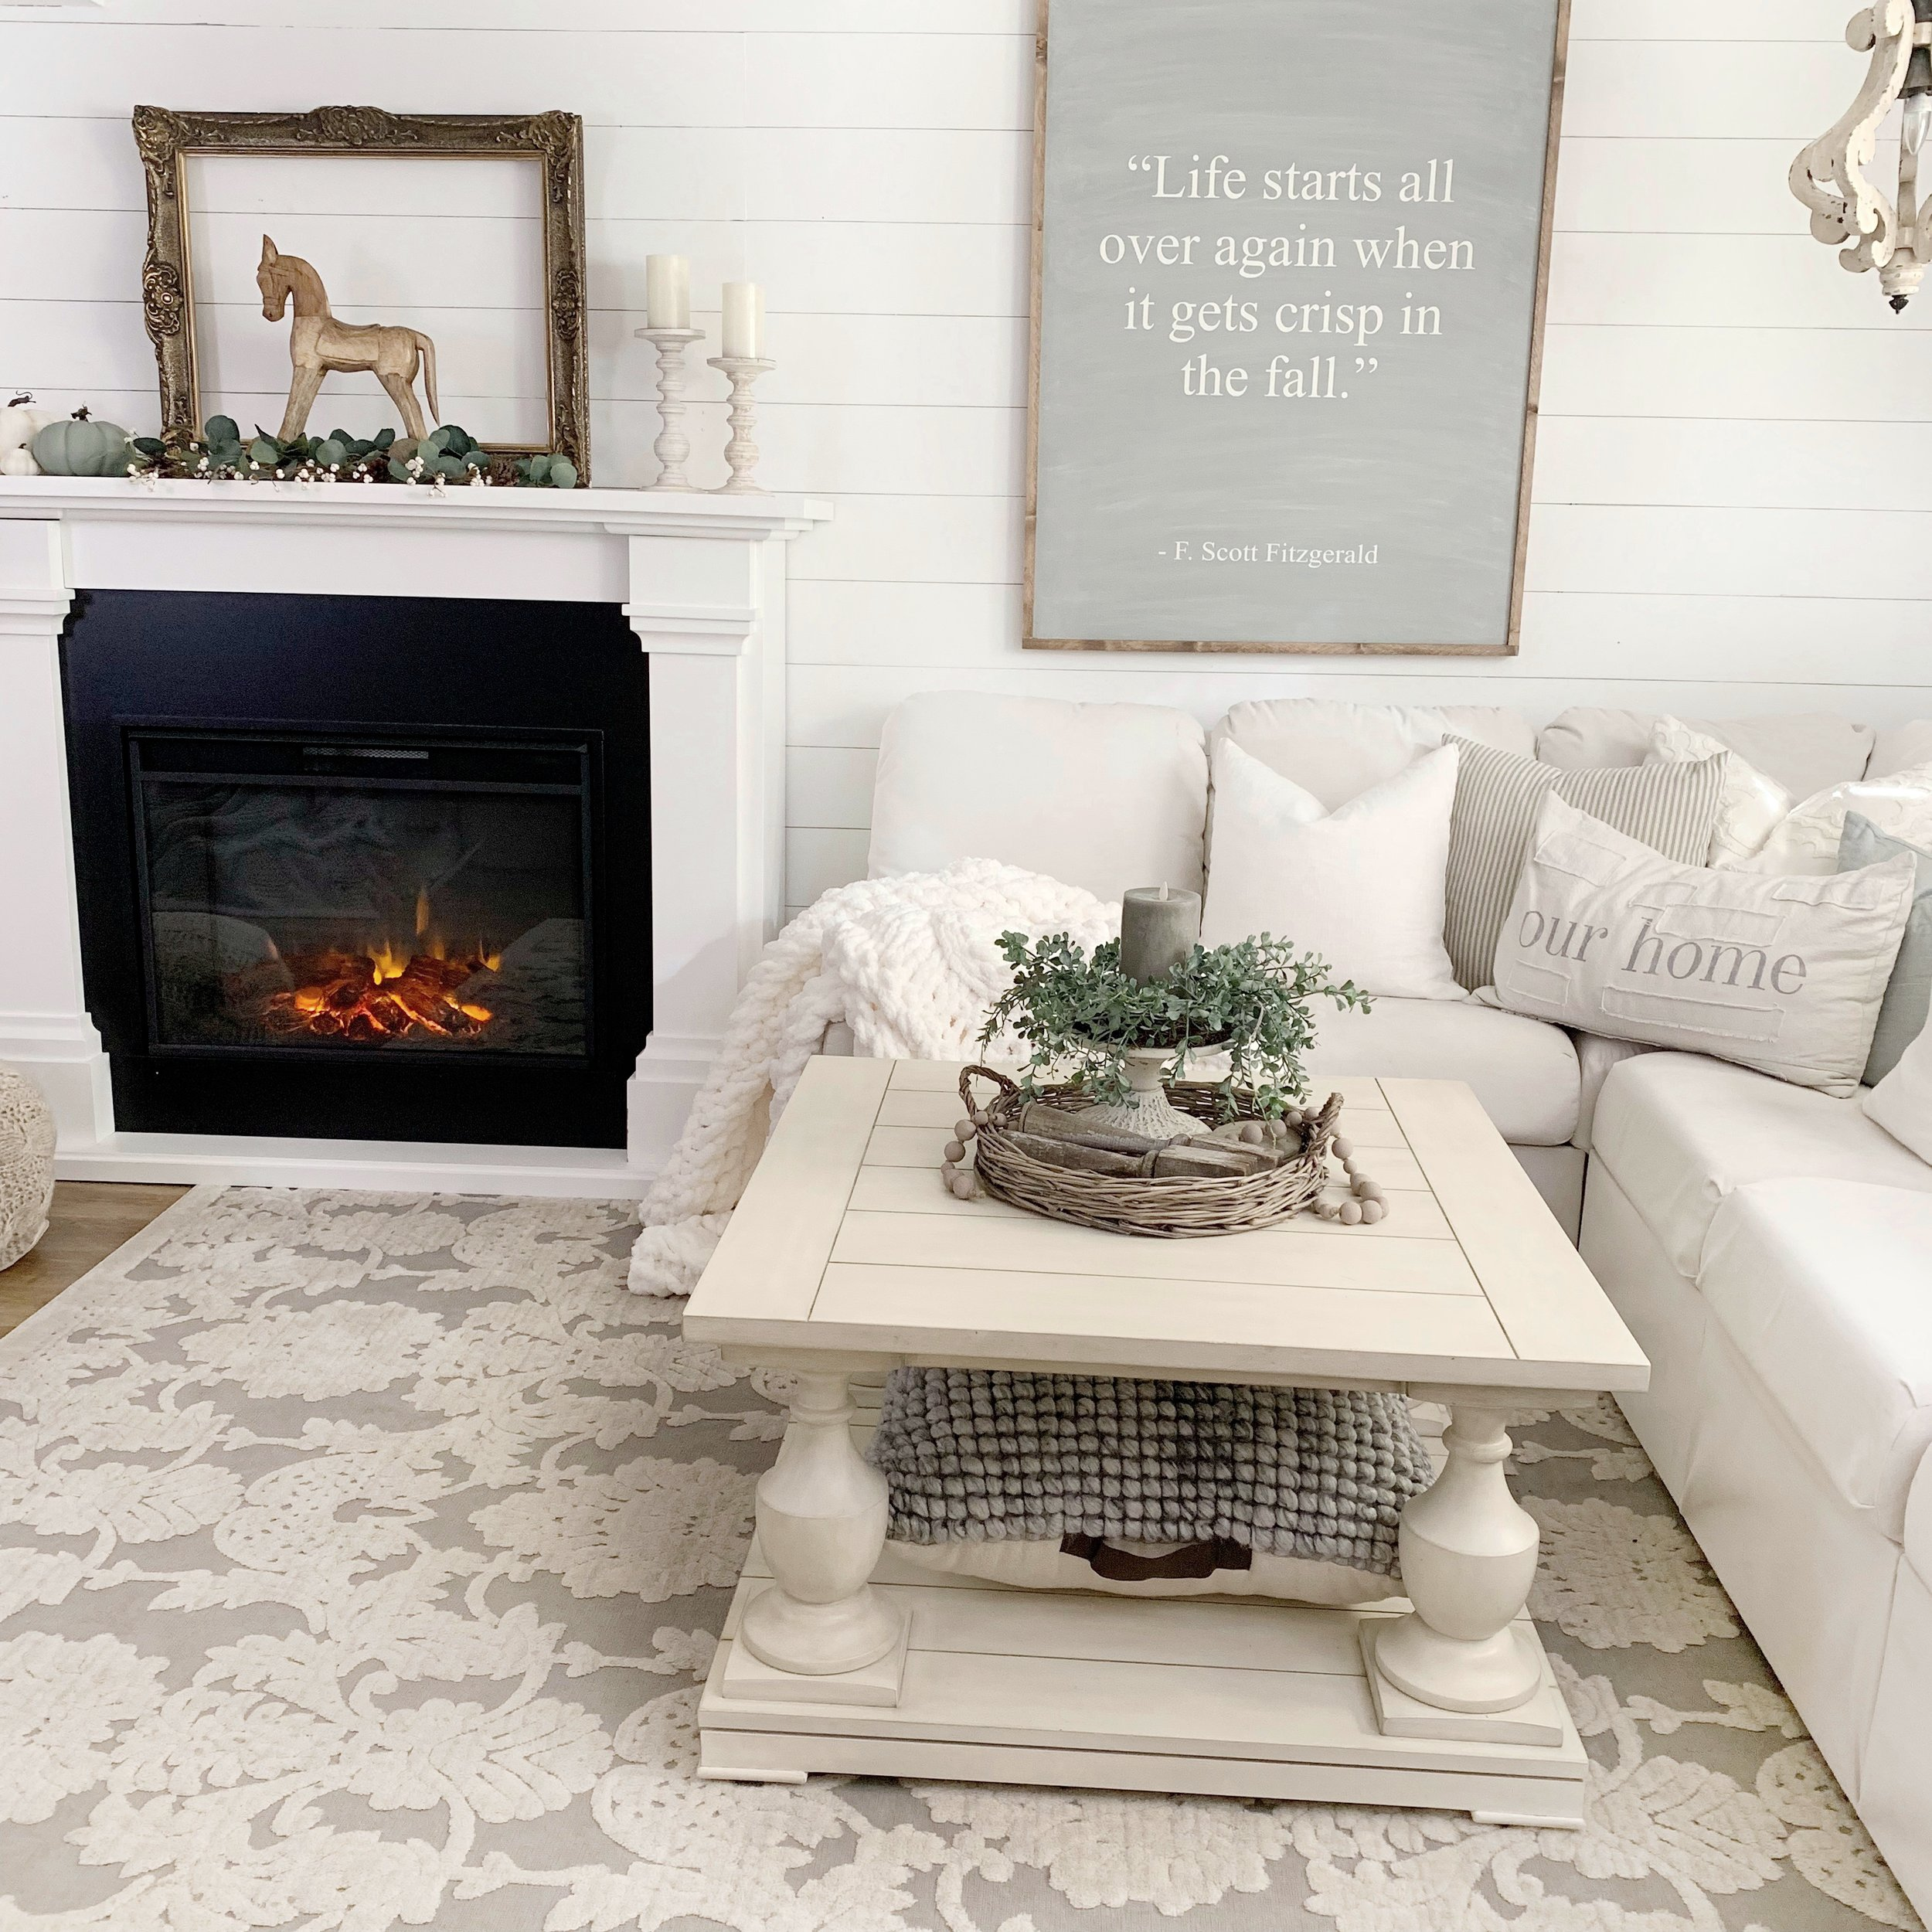 Adding Warmth To Your Home With Bed Bath Beyond Dreaming Of Homemaking